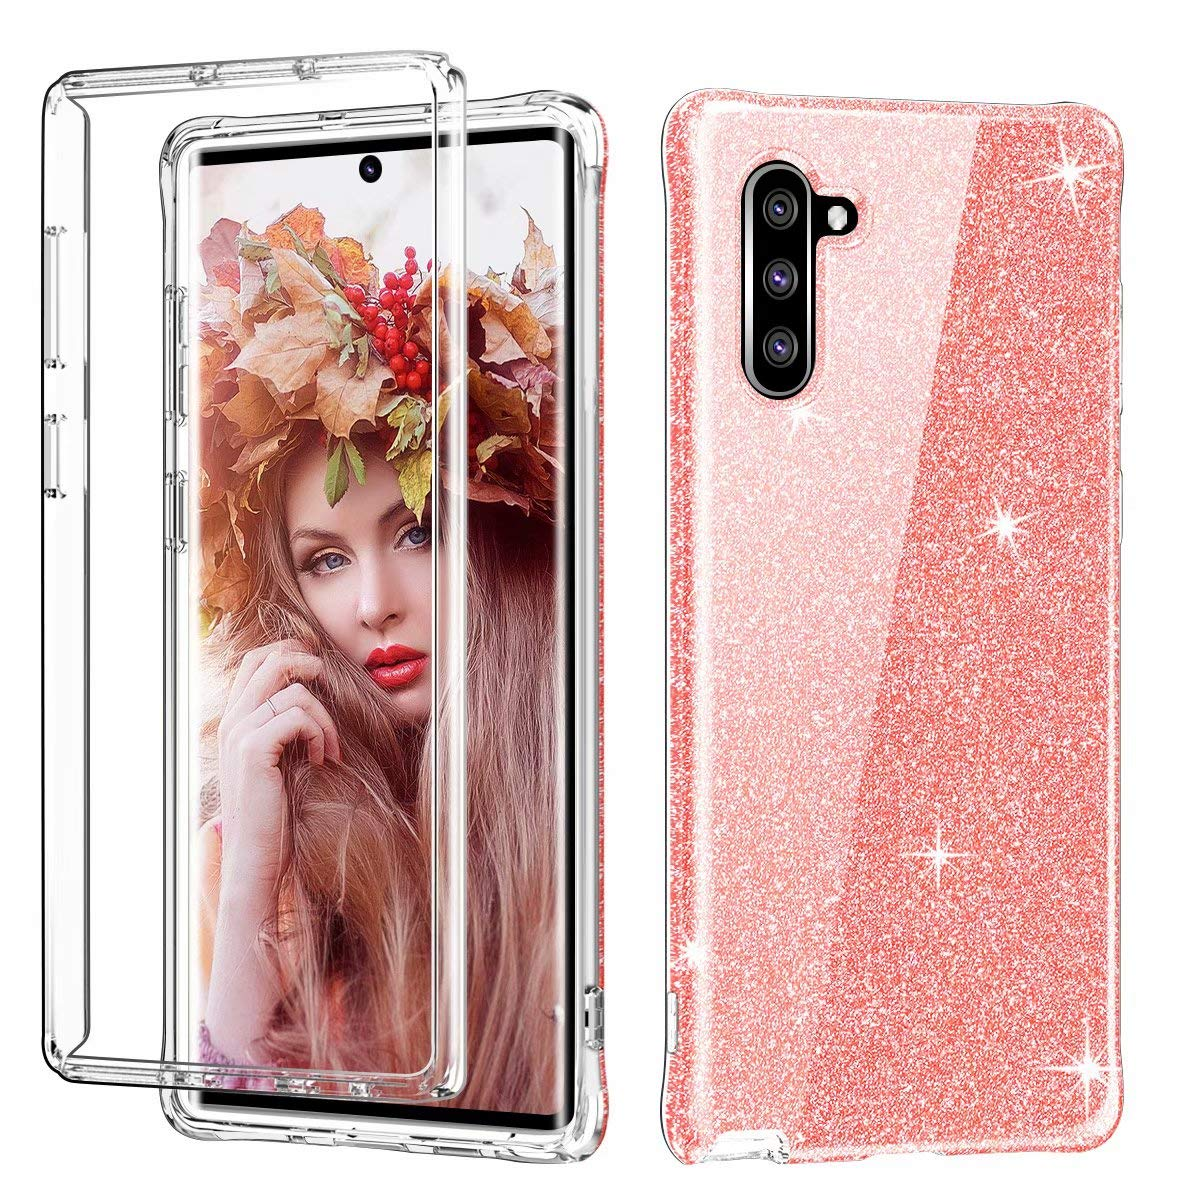 Galaxy Note 10 Case, Ranyi Full Body Protective Crystal Transparent Cover Hybrid Bumper [Supported Wireless Charging] Shock Absorbing Flexible Resilient TPU Case for Samsung Galaxy Note 10 (Pink) by Ranyi